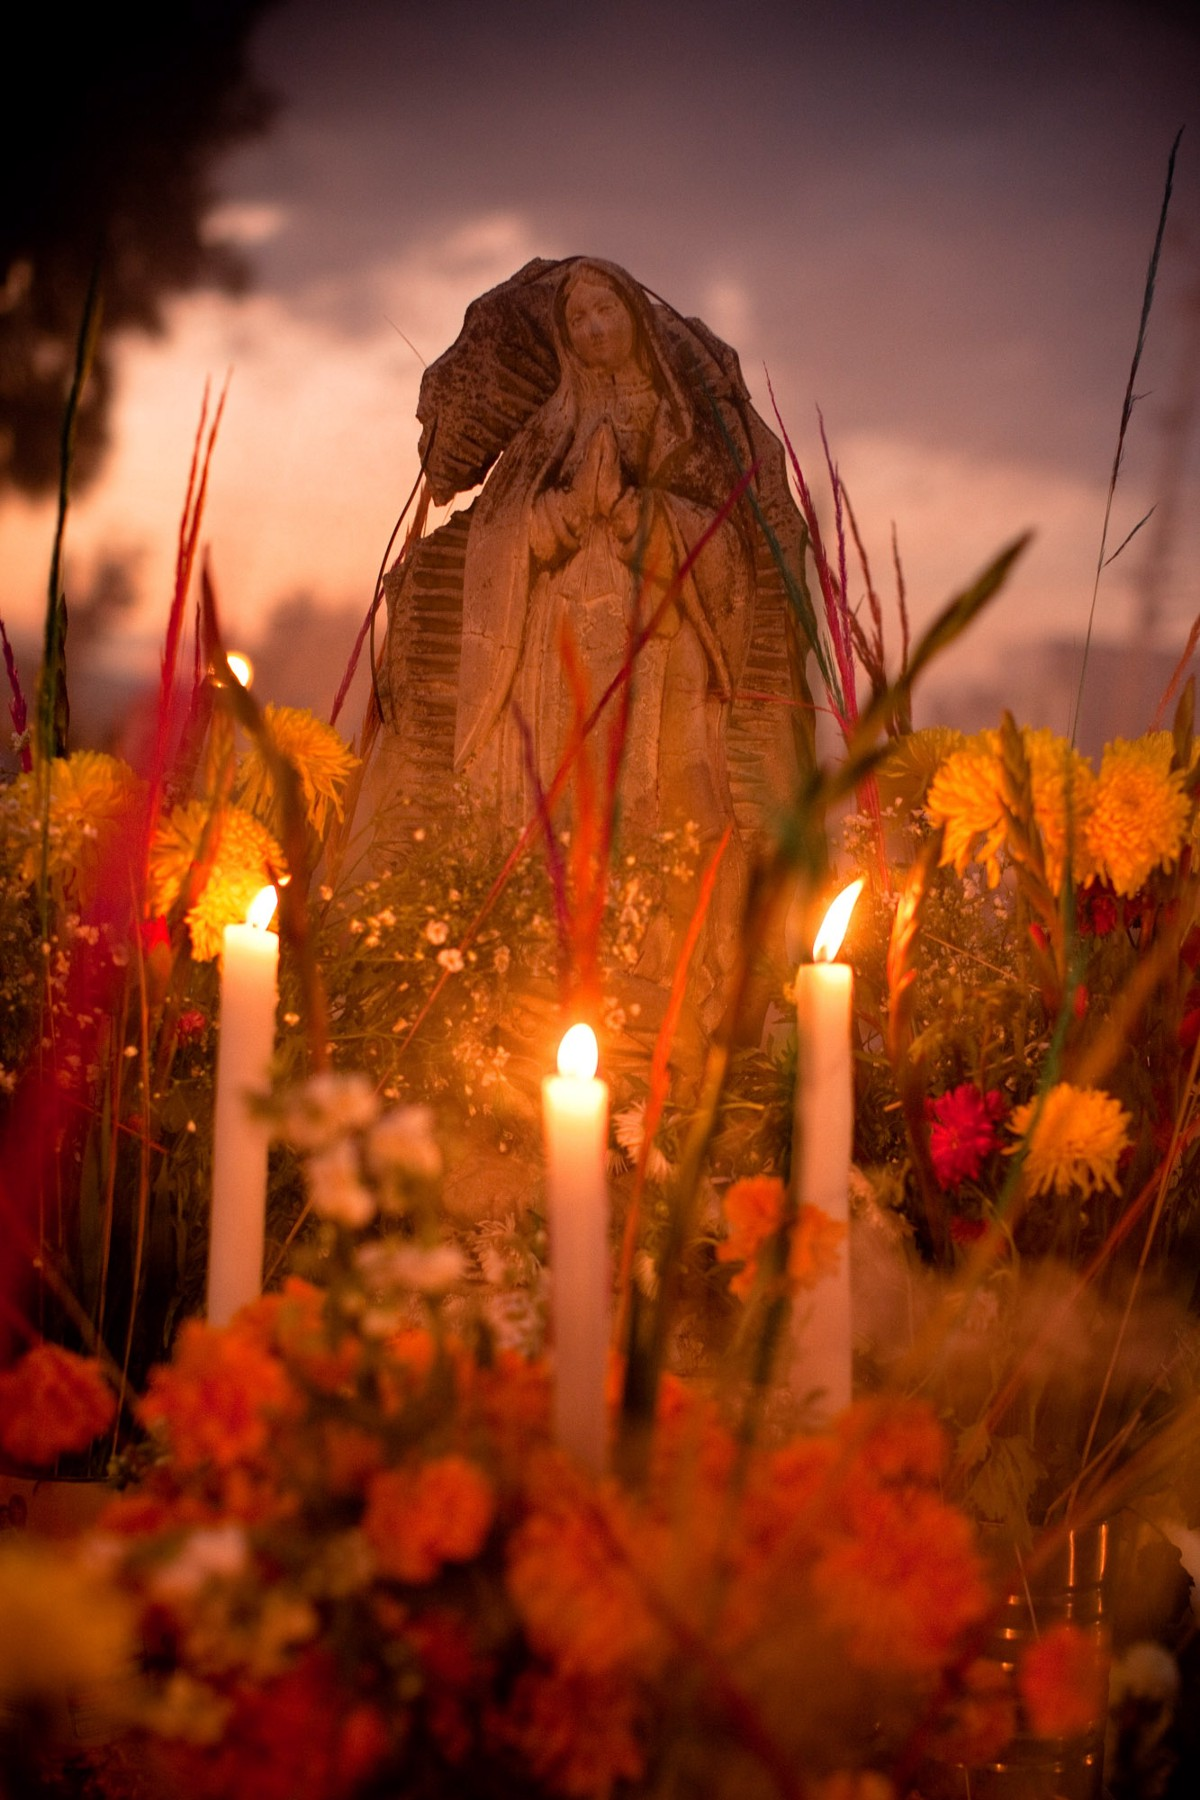 Families decorate graves for the candlelight vigil known as La Alumbrada during Day of the Dead in Mixquic. ©James Fisher 2017 All Rights Reserved